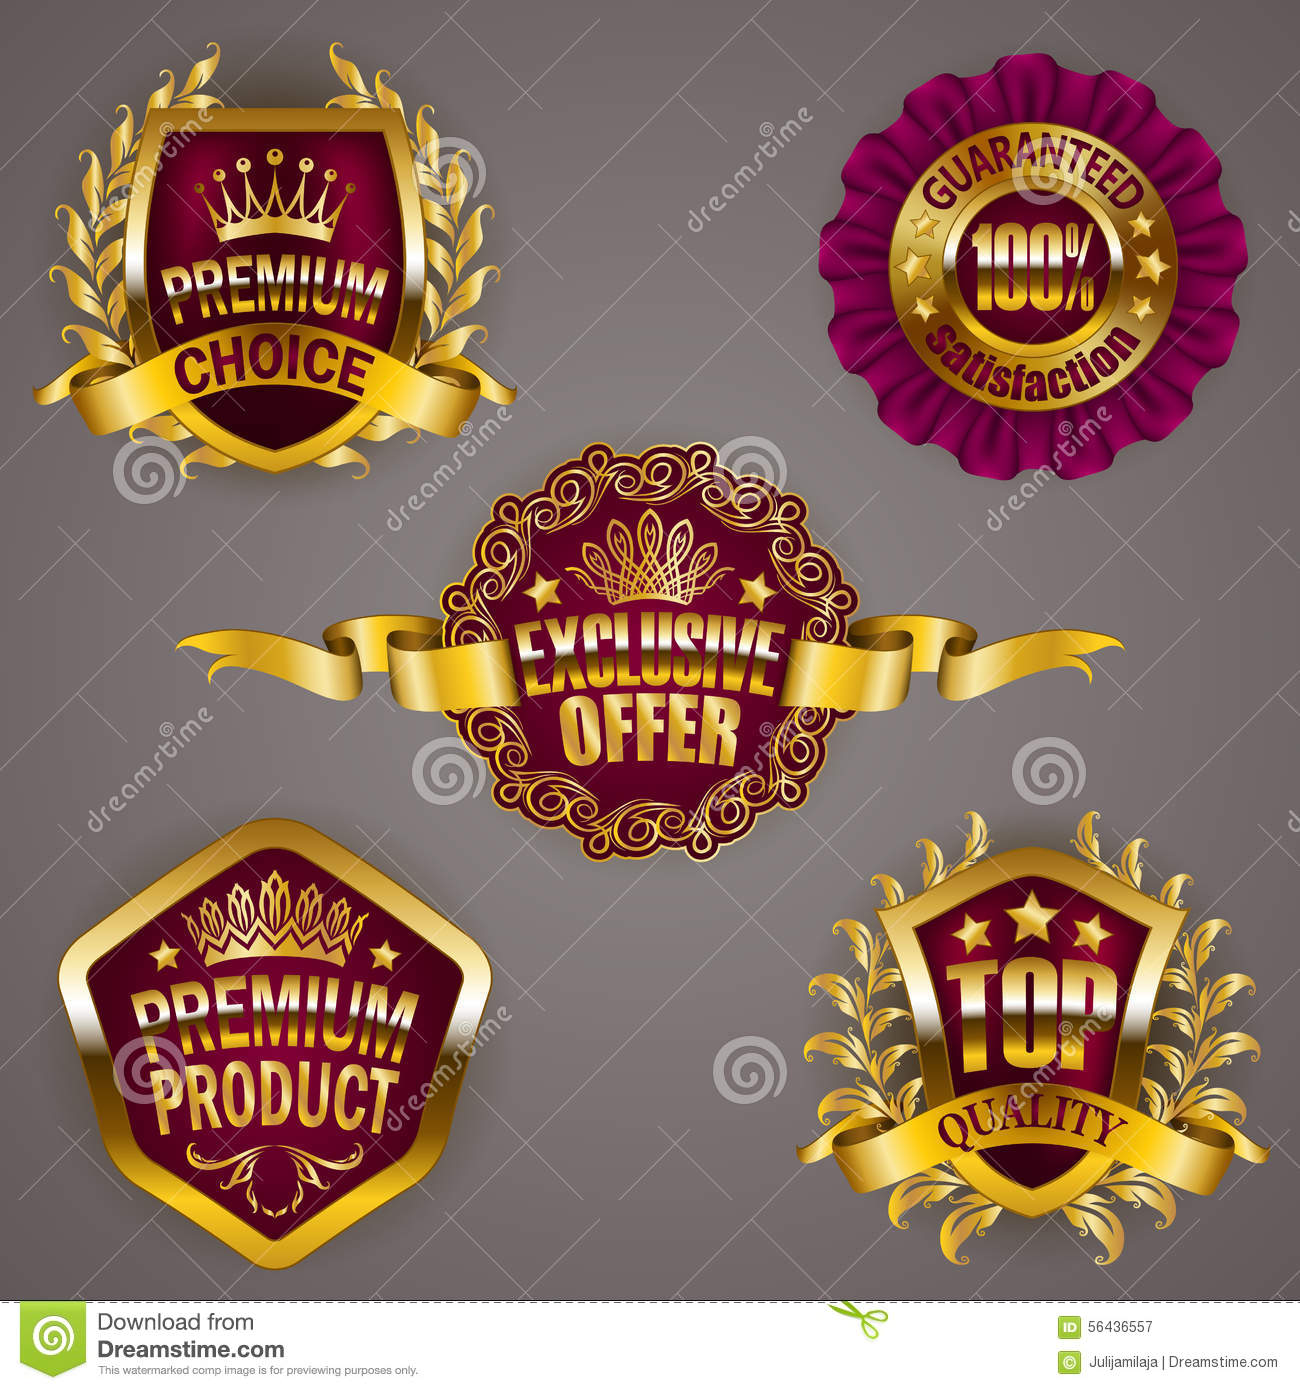 Set of luxury gold badges with crown ribbon exclusive offer premium product 100 percent top quality guaranteed promotion emblems icons labels medal